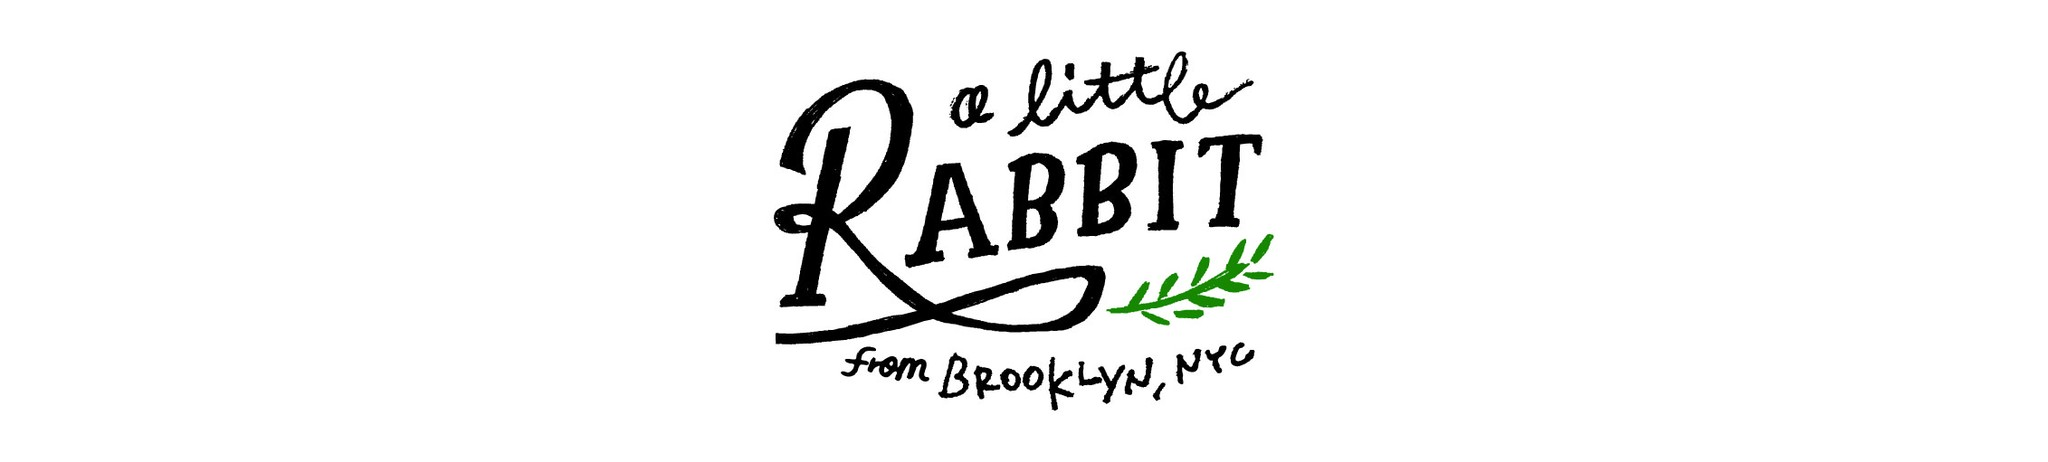 a little RABBIT